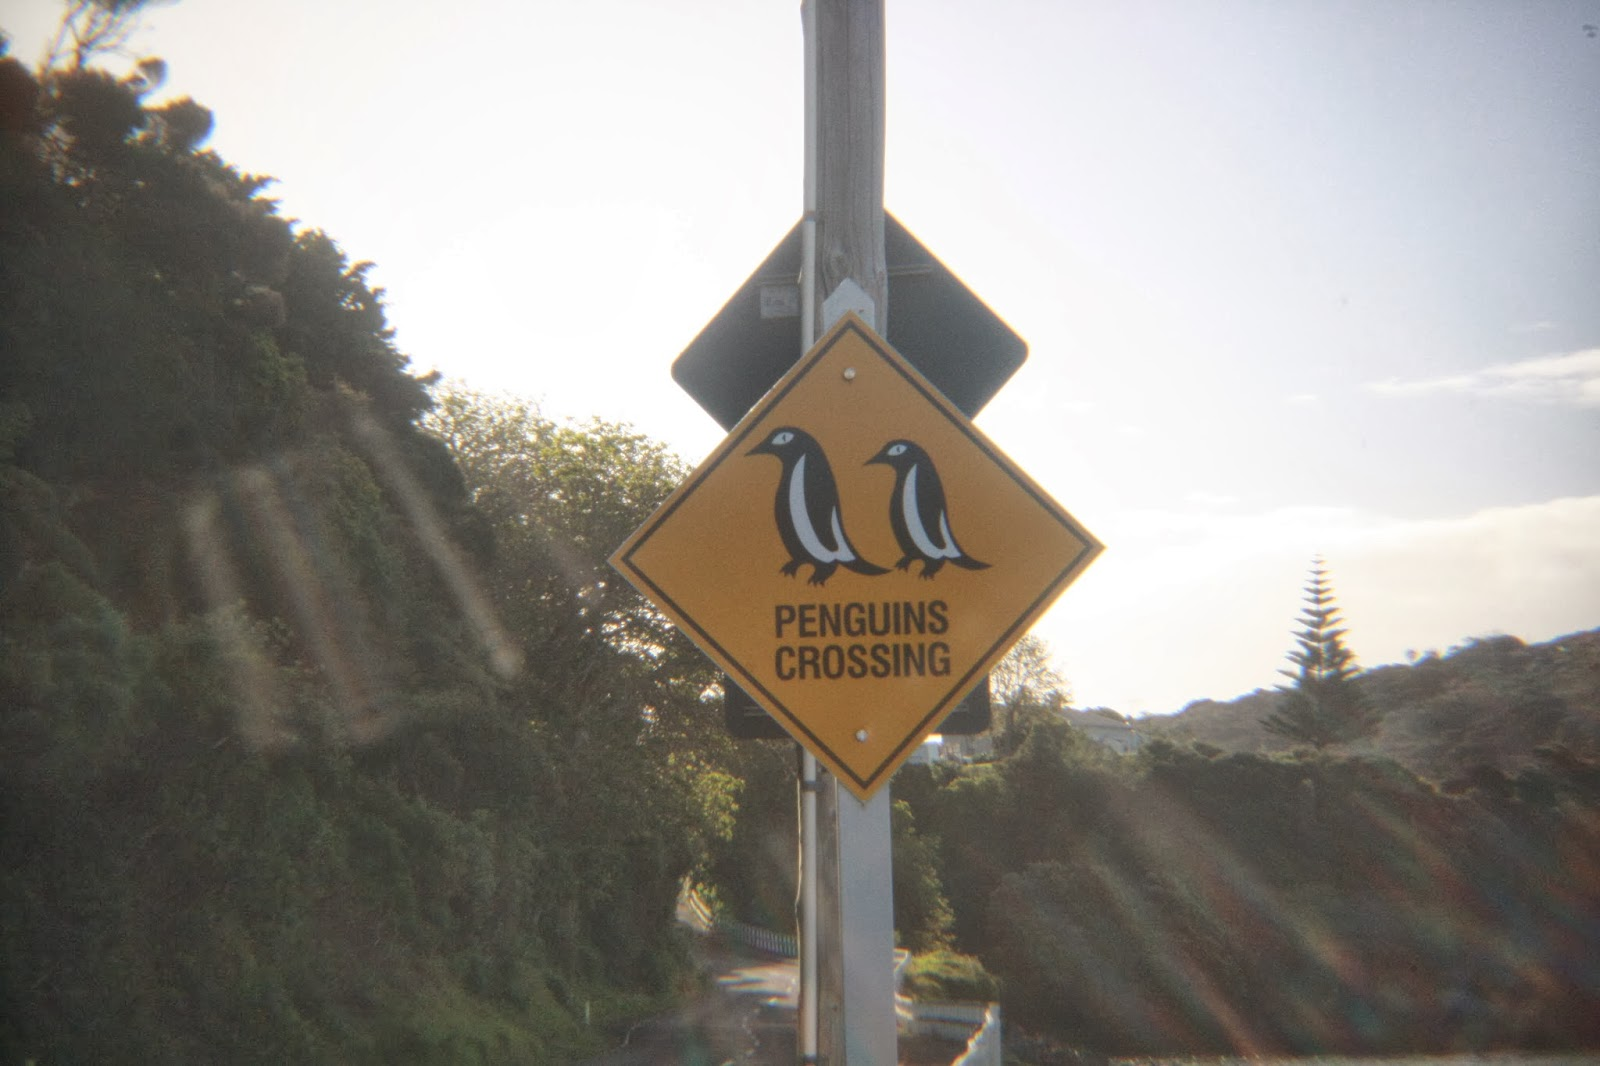 A penguin crossing road sign.